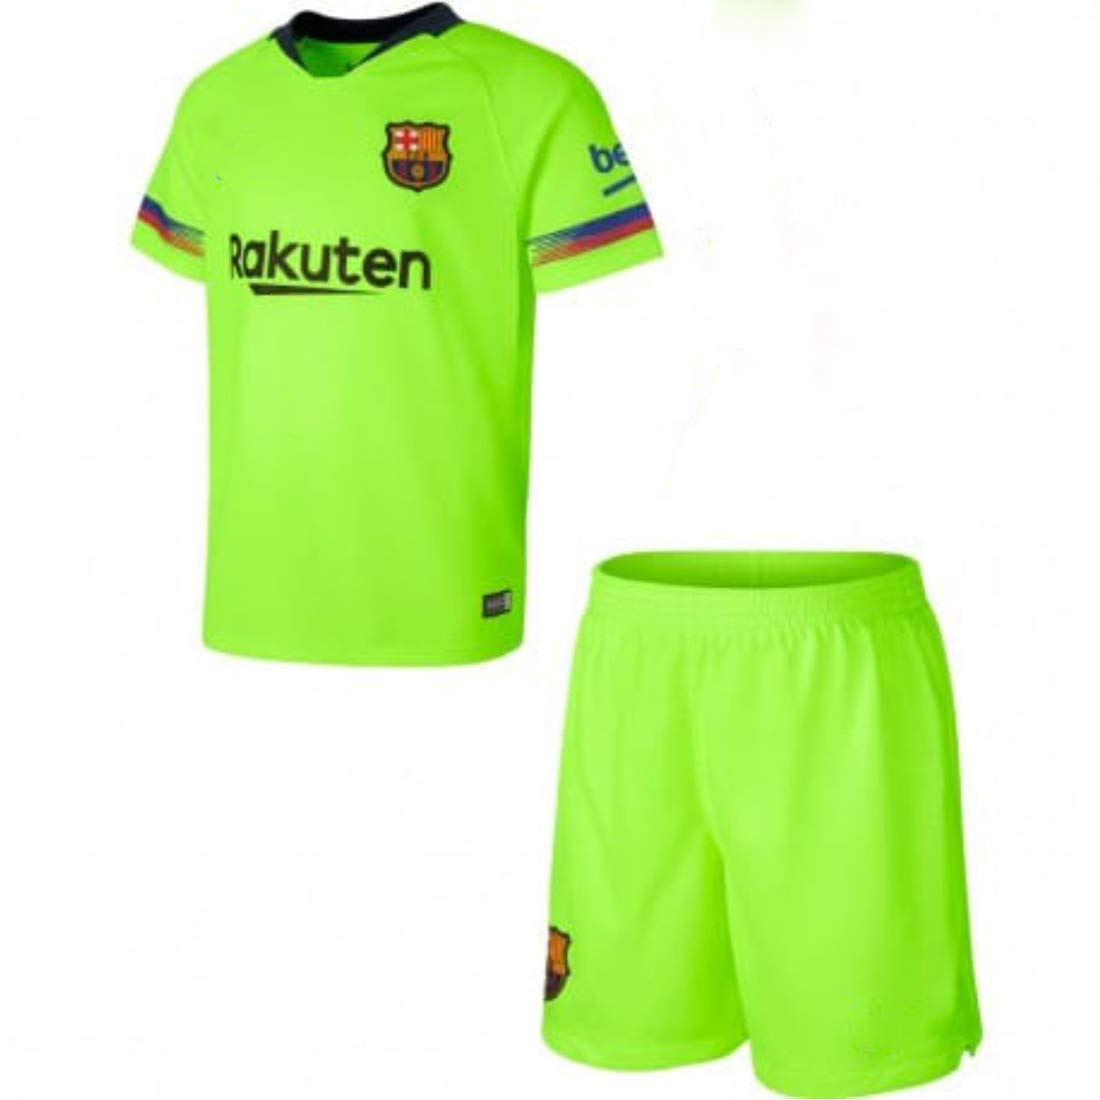 Golden Fashion Men S Barcelona Away Jersey Kit T Shirt And Shorts With All Logos In Place Small 38 Inches Neon Amazon In Clothing Accessories